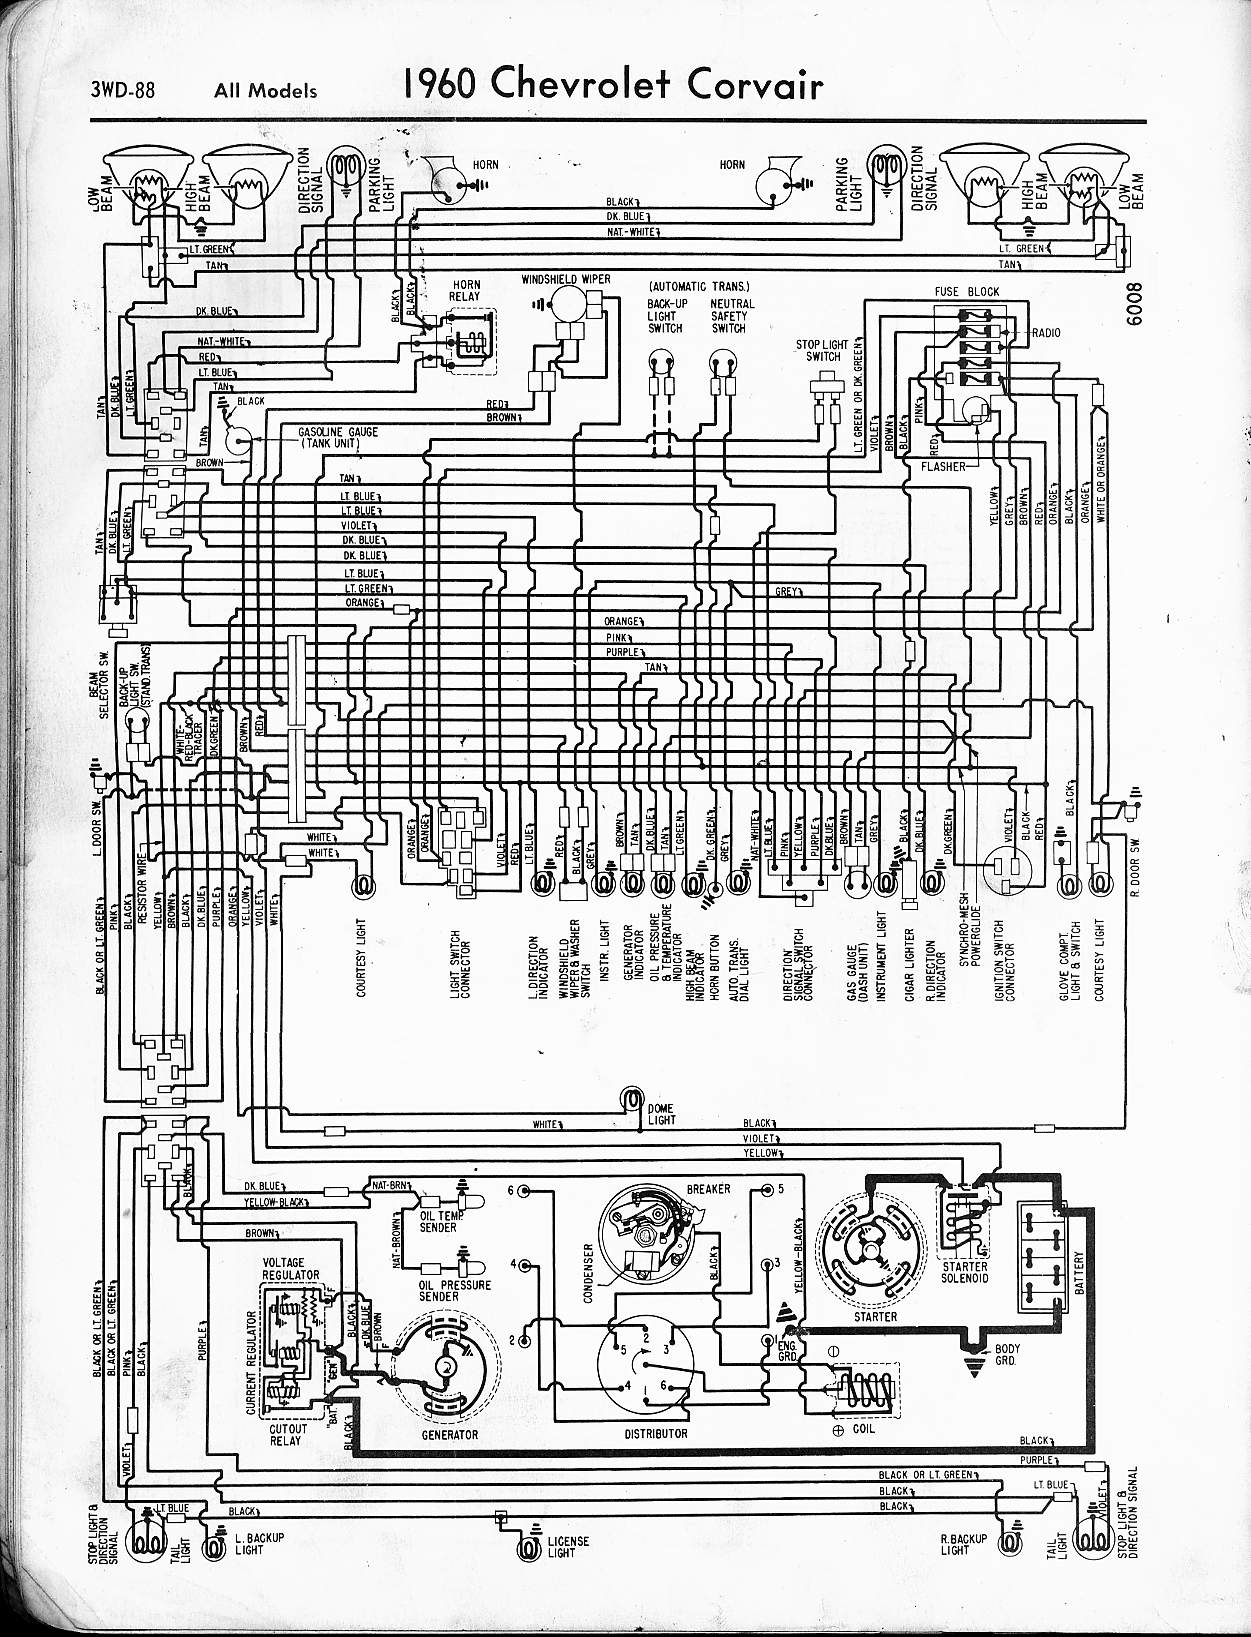 1966 corvette turn signal wiring diagram 3 way lighting uk 1961 chevy pickup harness get free image about